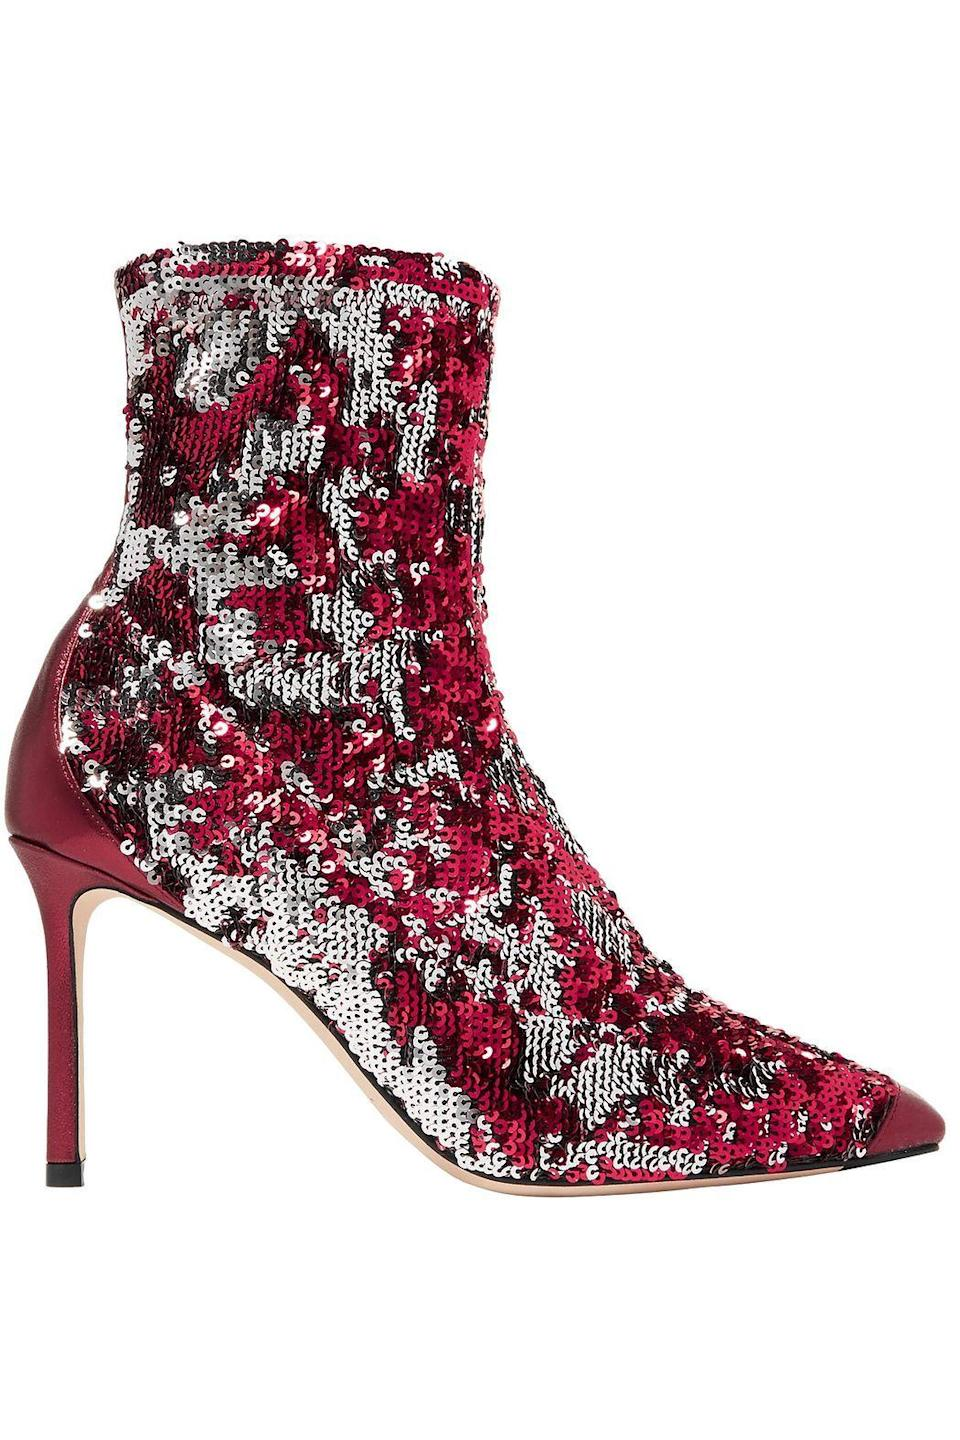 """<p><strong>JIMMY CHOO</strong></p><p>theoutnet.com</p><p><strong>$268.00</strong></p><p><a href=""""https://go.redirectingat.com?id=74968X1596630&url=https%3A%2F%2Fwww.theoutnet.com%2Fen-us%2Fshop%2Fproduct%2Fjimmy-choo%2Fboots%2Fhigh-heel-boots%2Fricky-85-metallic-leather-trimmed-sequined-stretch-knit-sock-boots%2F1473020371679968&sref=https%3A%2F%2Fwww.elle.com%2Ffashion%2Fshopping%2Fg33595007%2Fthe-outnet-clearance-summer-2020-sale%2F"""" rel=""""nofollow noopener"""" target=""""_blank"""" data-ylk=""""slk:Shop Now"""" class=""""link rapid-noclick-resp"""">Shop Now</a></p>"""